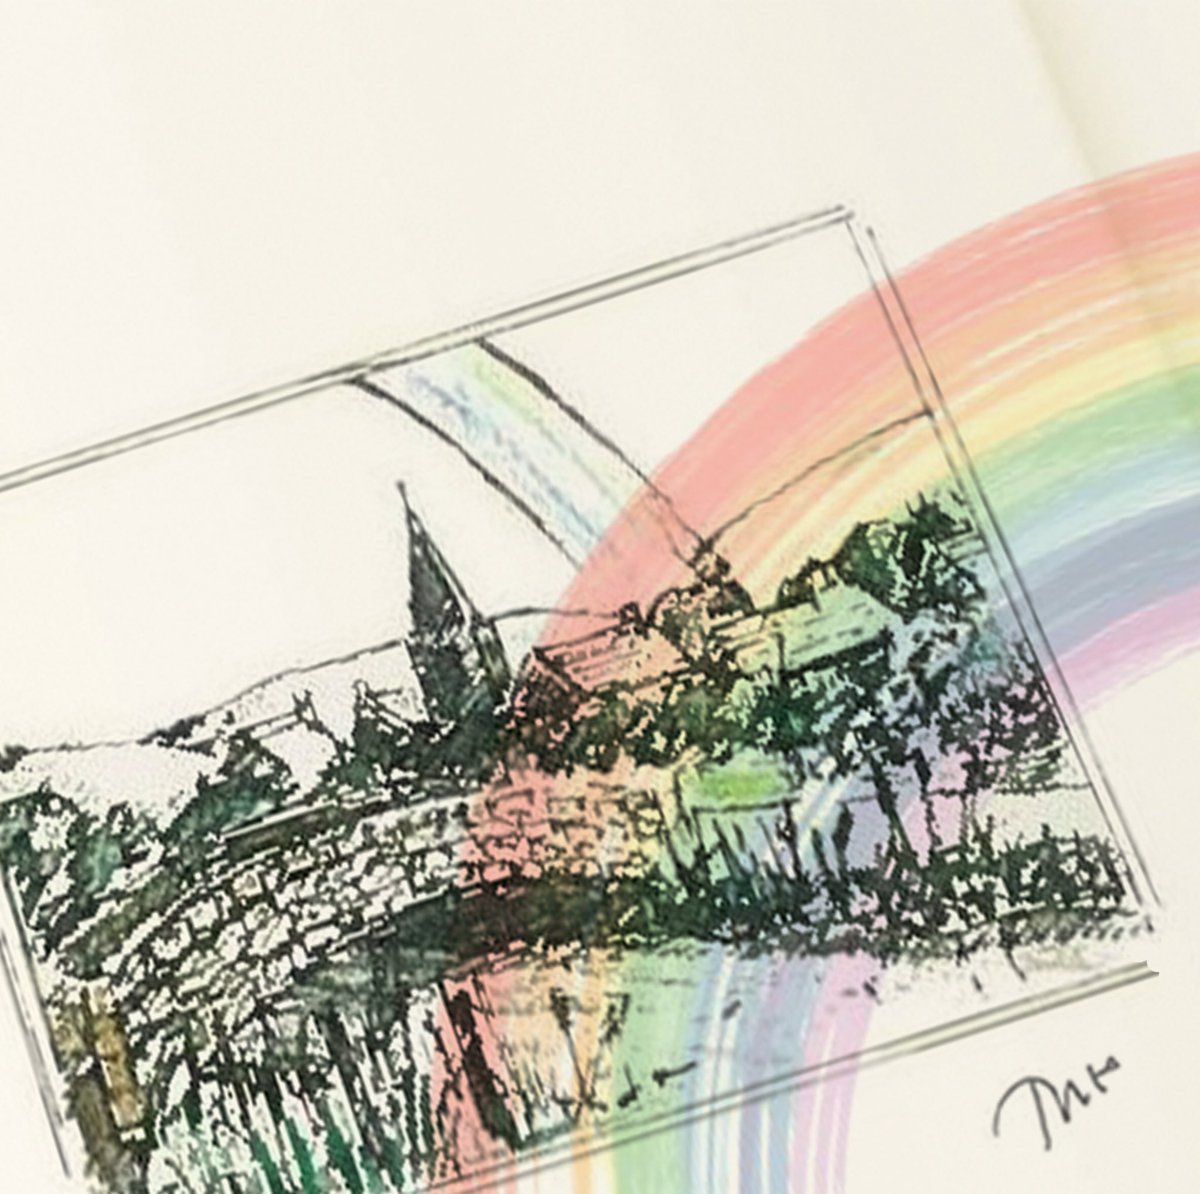 Away above the chimney tops That's where you'll find me #TheoFennell #OverTheRainbow #WizardOfOz #YellowBrickRoad #Sketch #Rainbow #PotOfGold pic.twitter.com/D0CfyyPuSJ